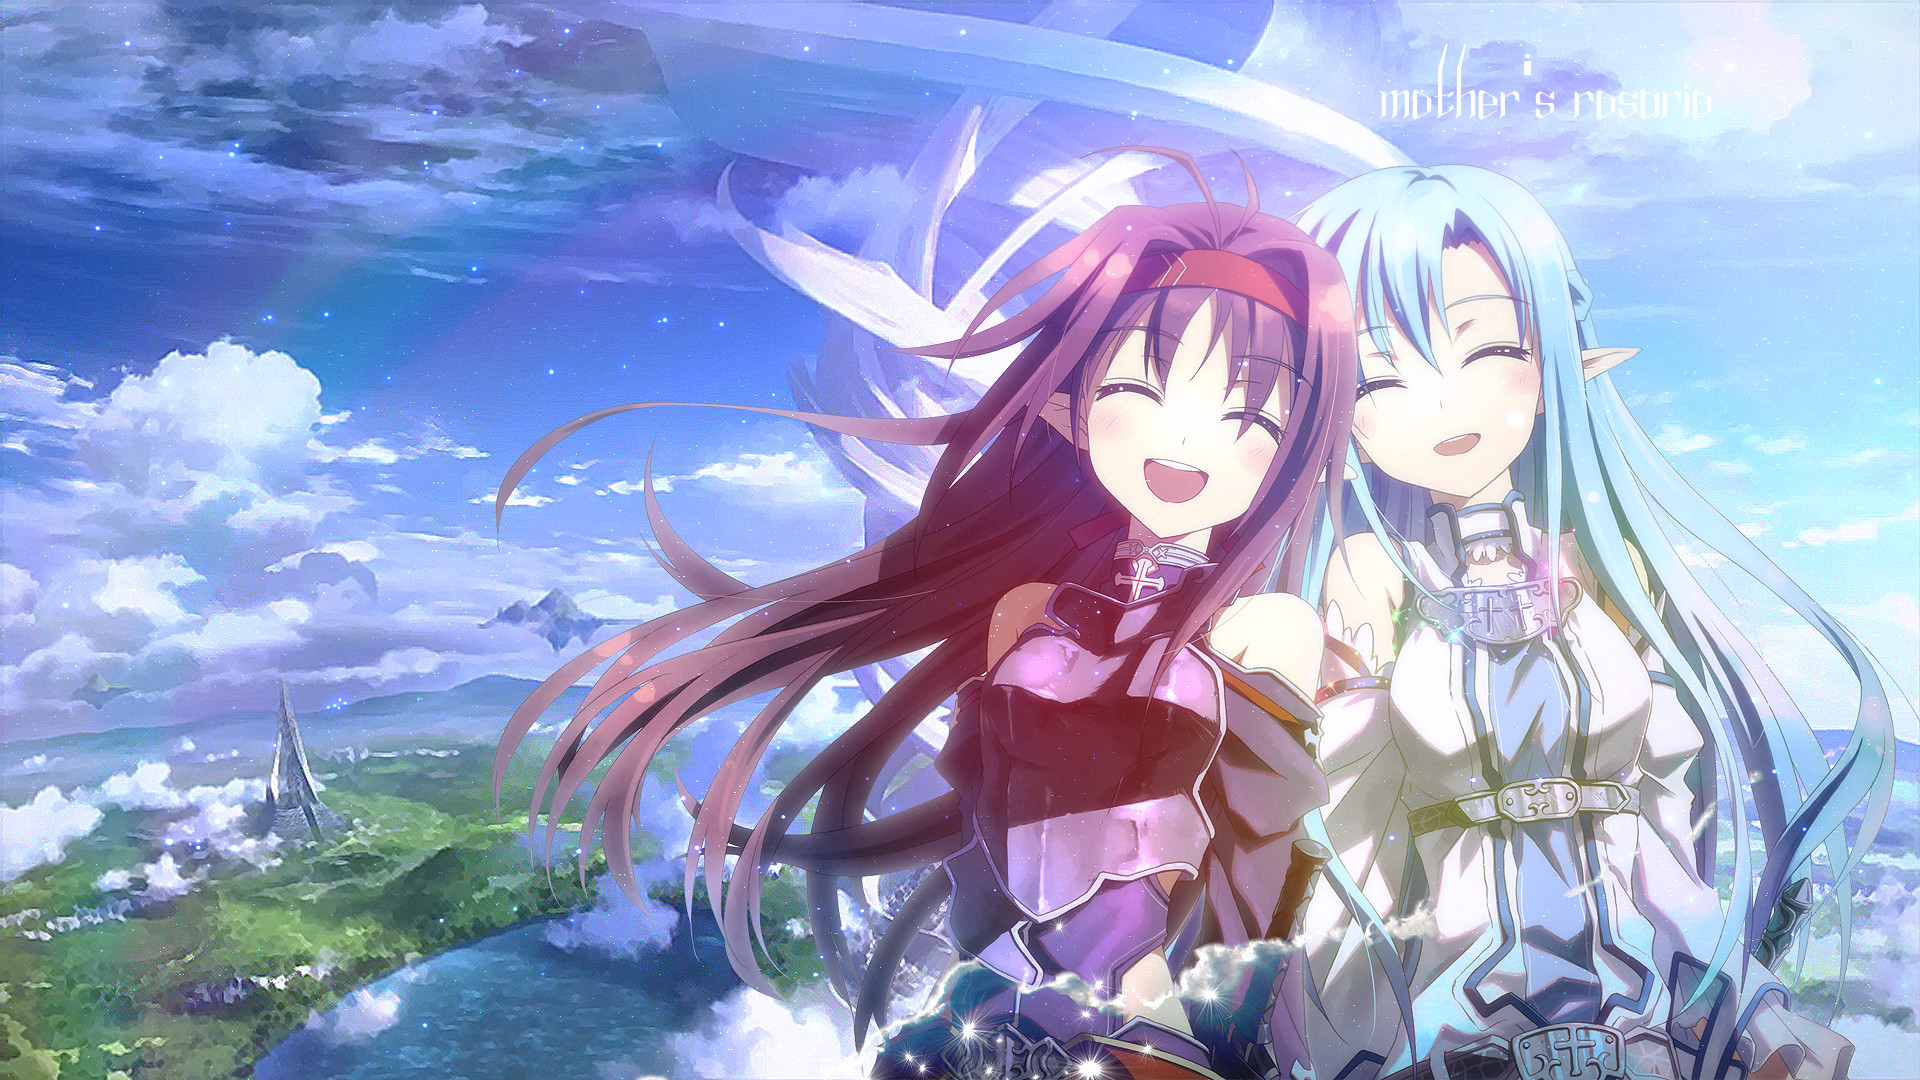 Sword art Online Mother's Rosario ~ Colorful Wish by lysergicX on .